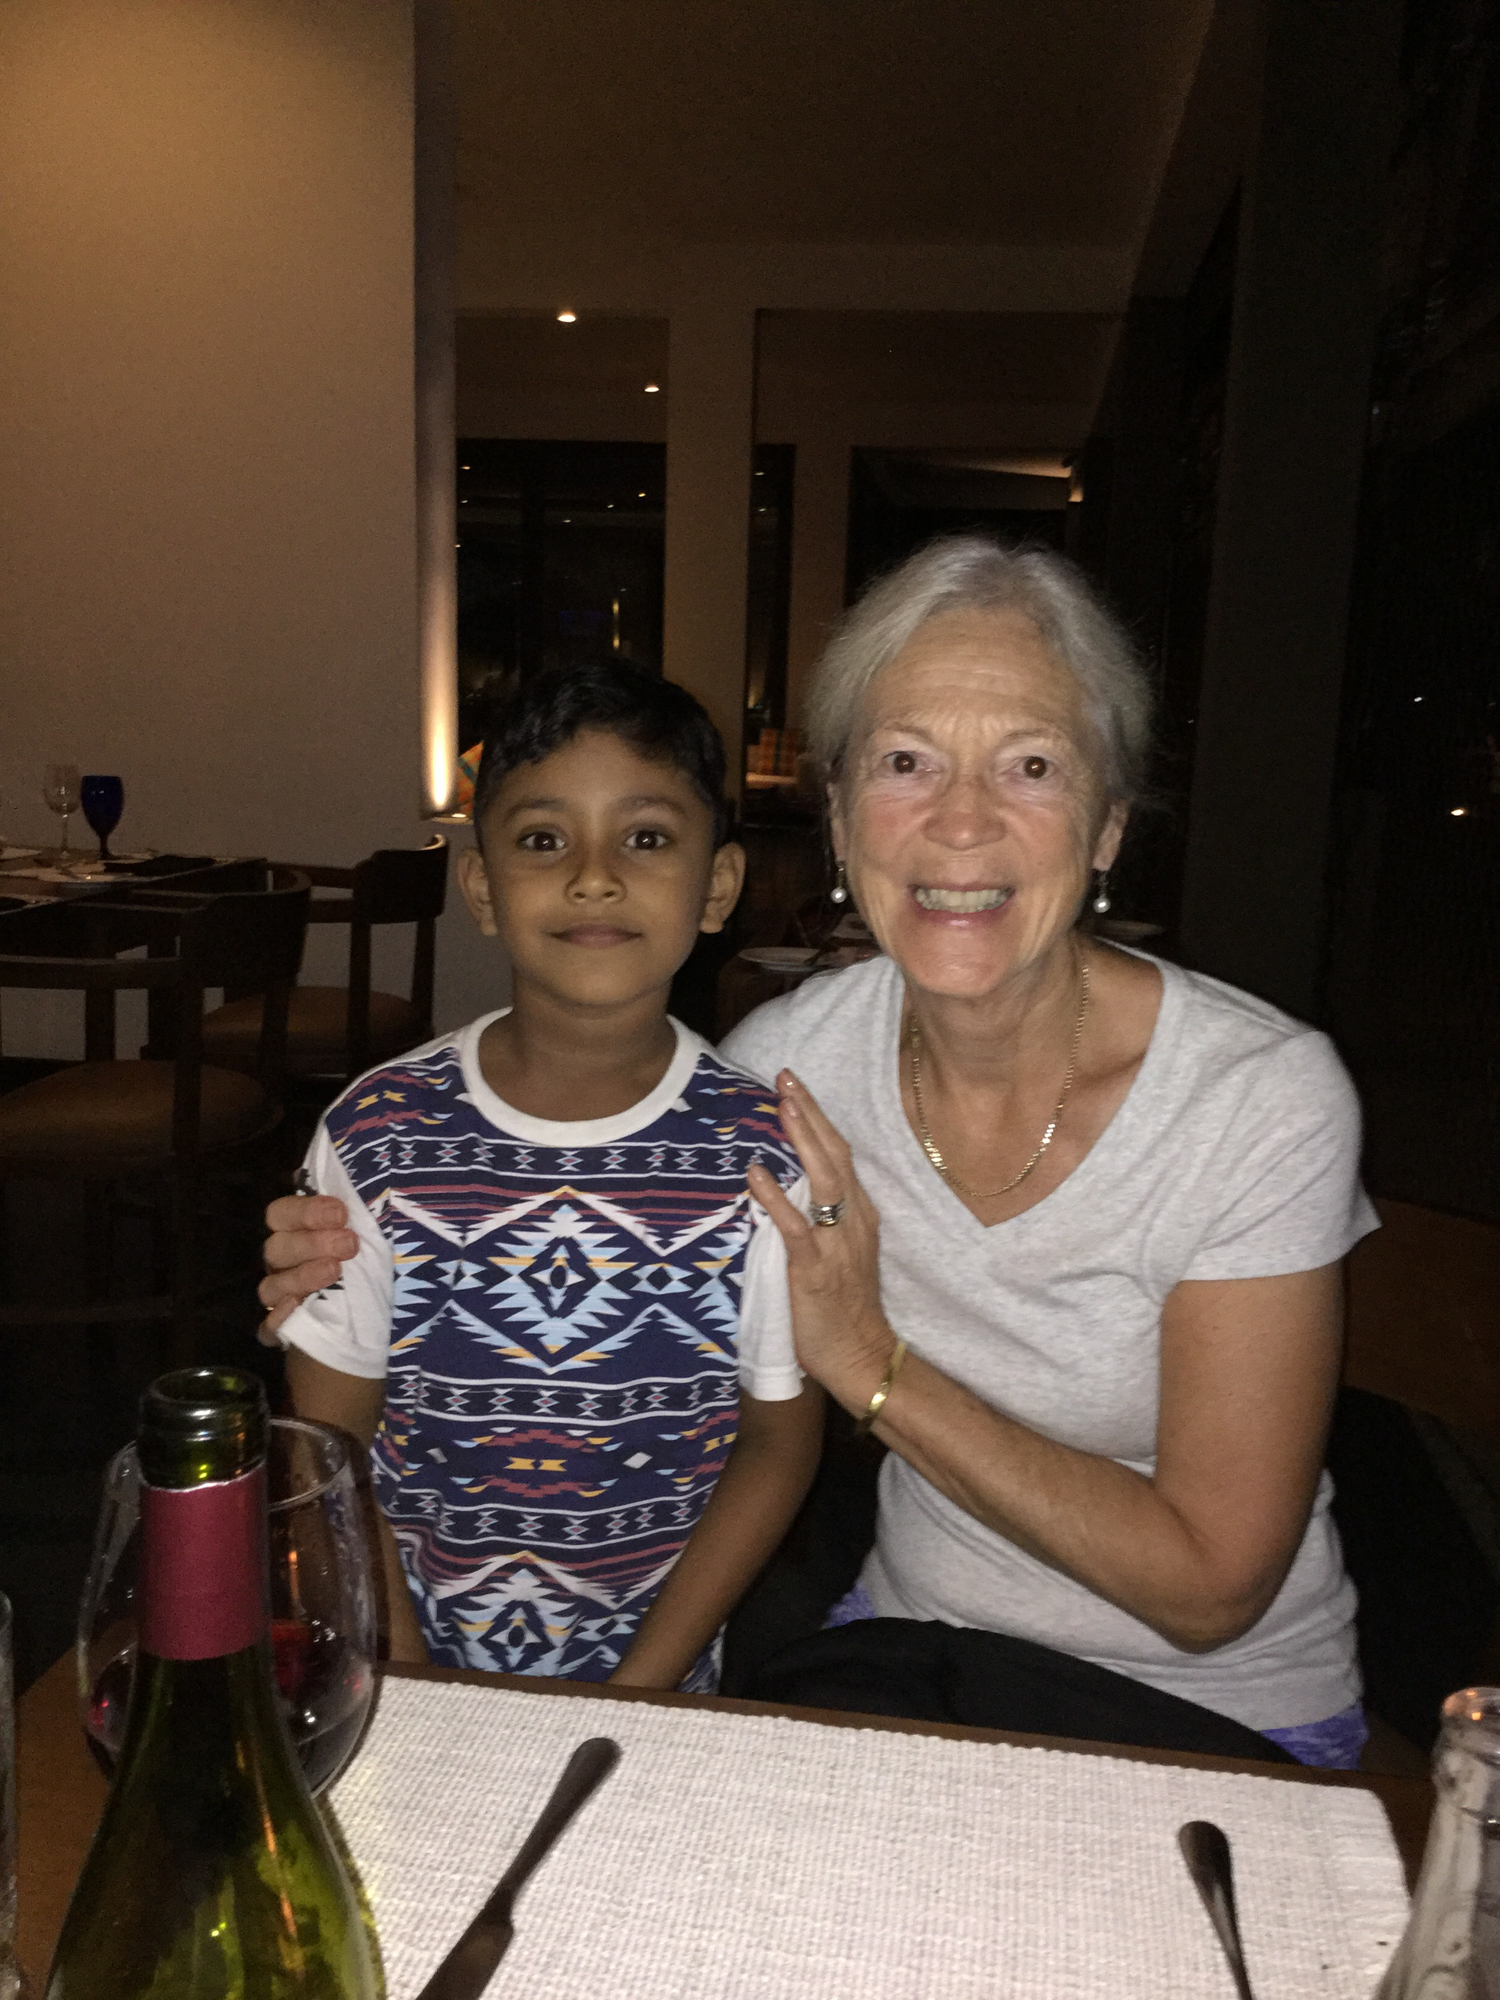 Recognised at dinner in the hotel. This very friendly chap came over to chat to us.